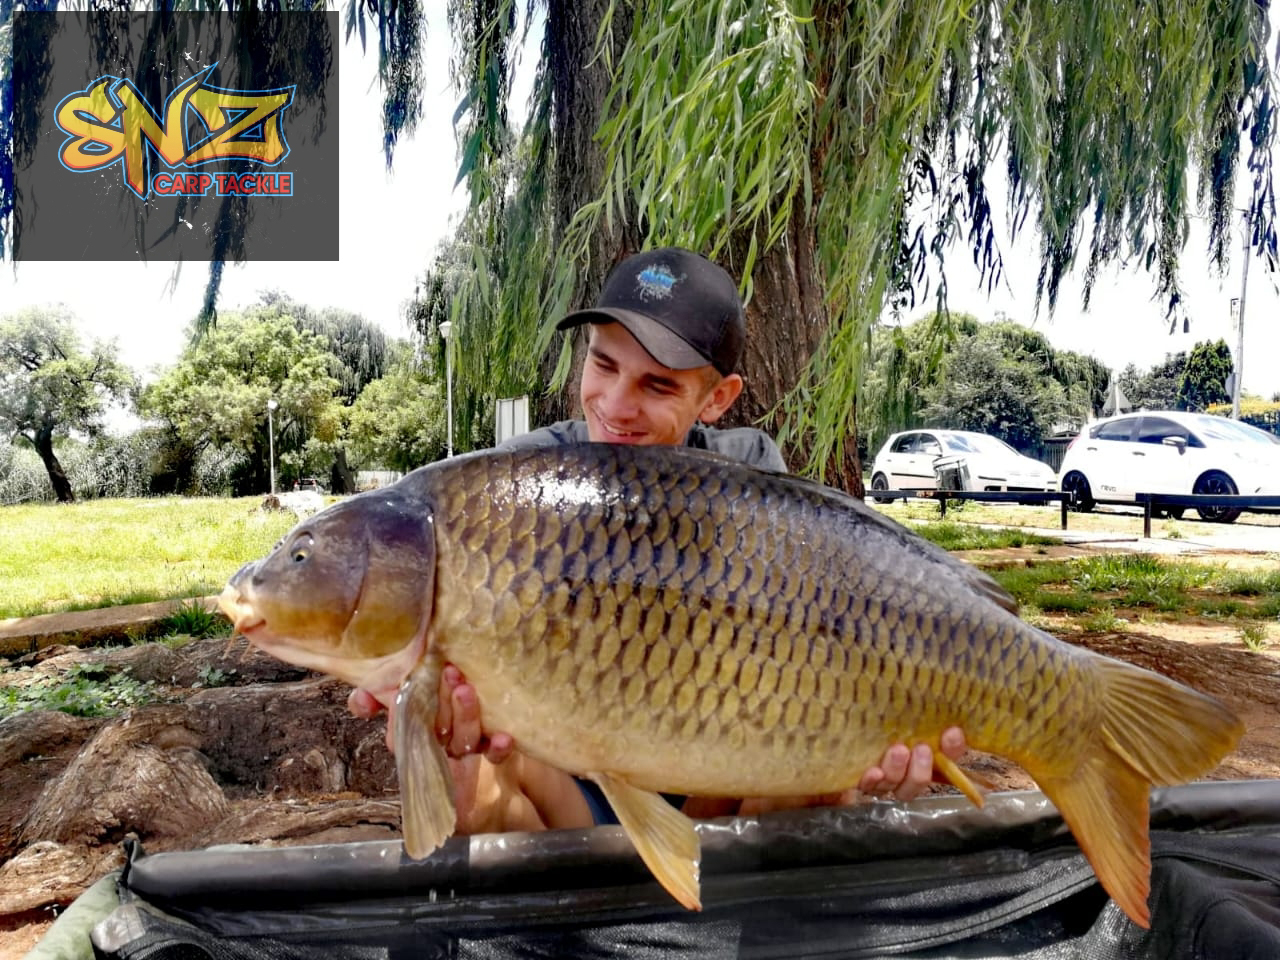 how to, wefish, south africa, johannesburg damn, water, river, hot spot, spots, sport,carp, grass carp, angler, fisher, fish, catch, big fish, massive, huge, amazing, best, wefish, wefish.co.za, free fishing content, best fishing news, sessions, insession,